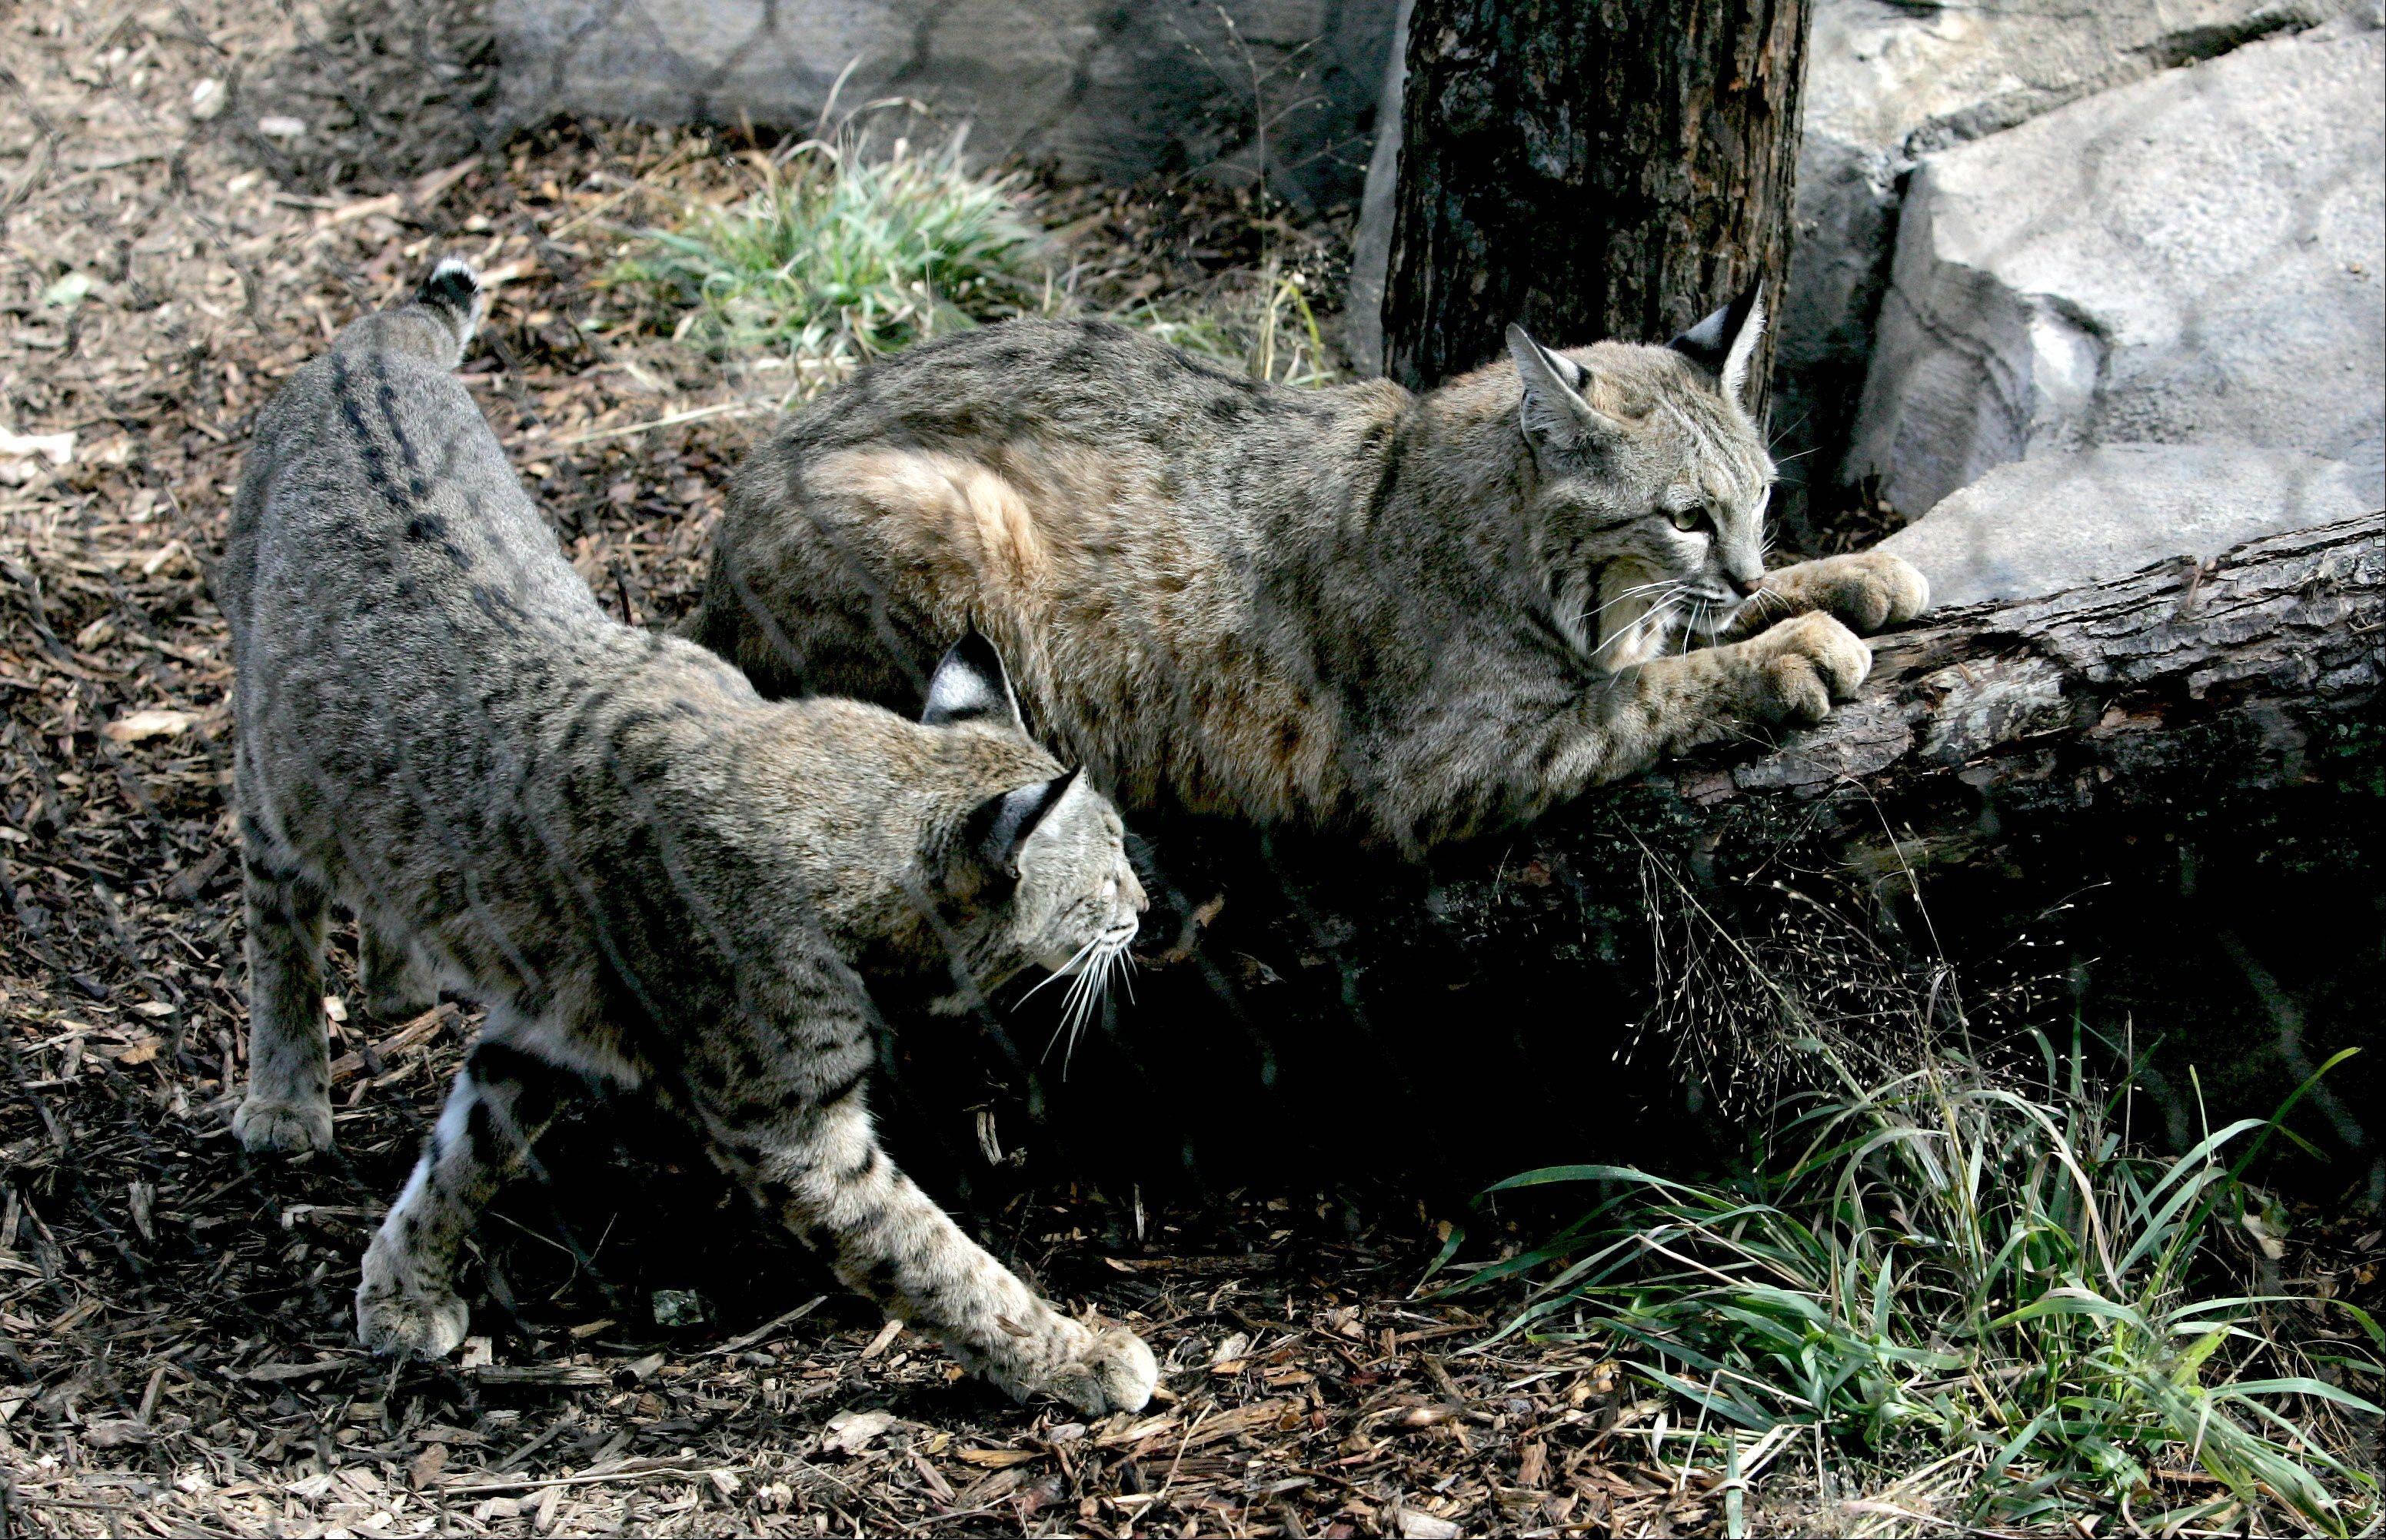 Cosley Zoo acquired brothers Salvatore, left, and Valentino from a humane society in California.